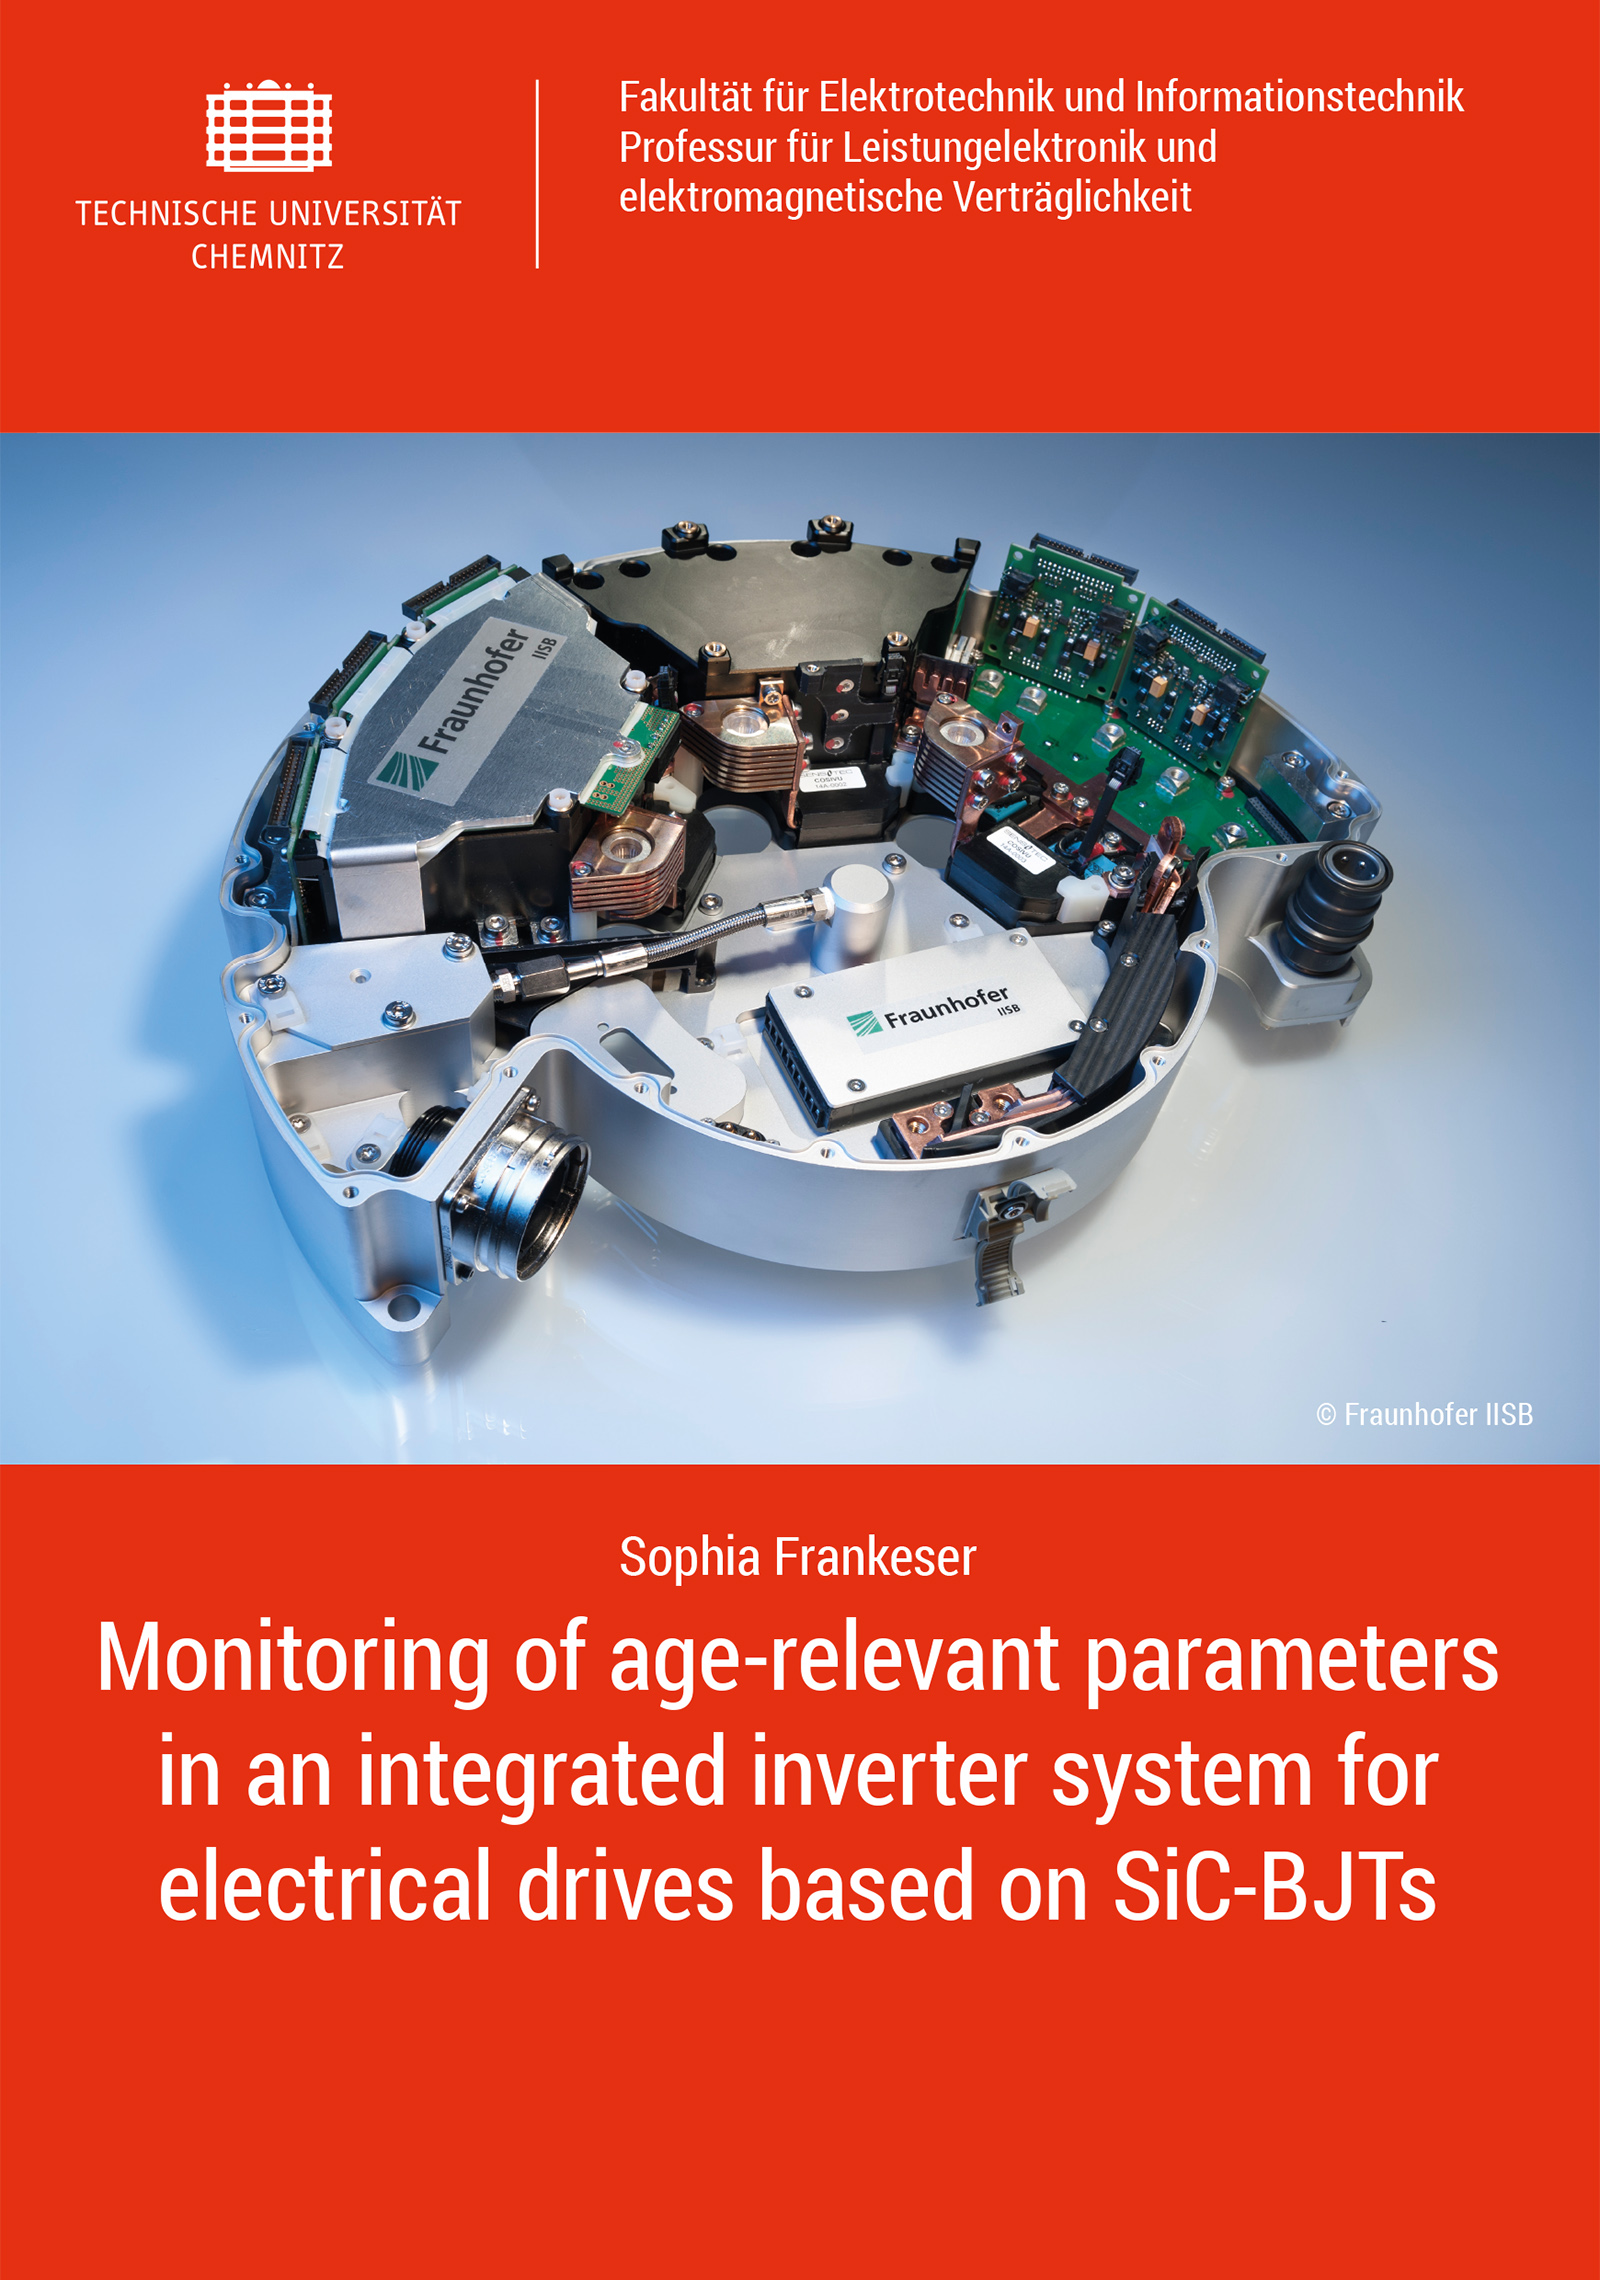 Cover: Monitoring of age-relevant parameters in an integrated inverter system for electrical drives based on SiC-BJTs